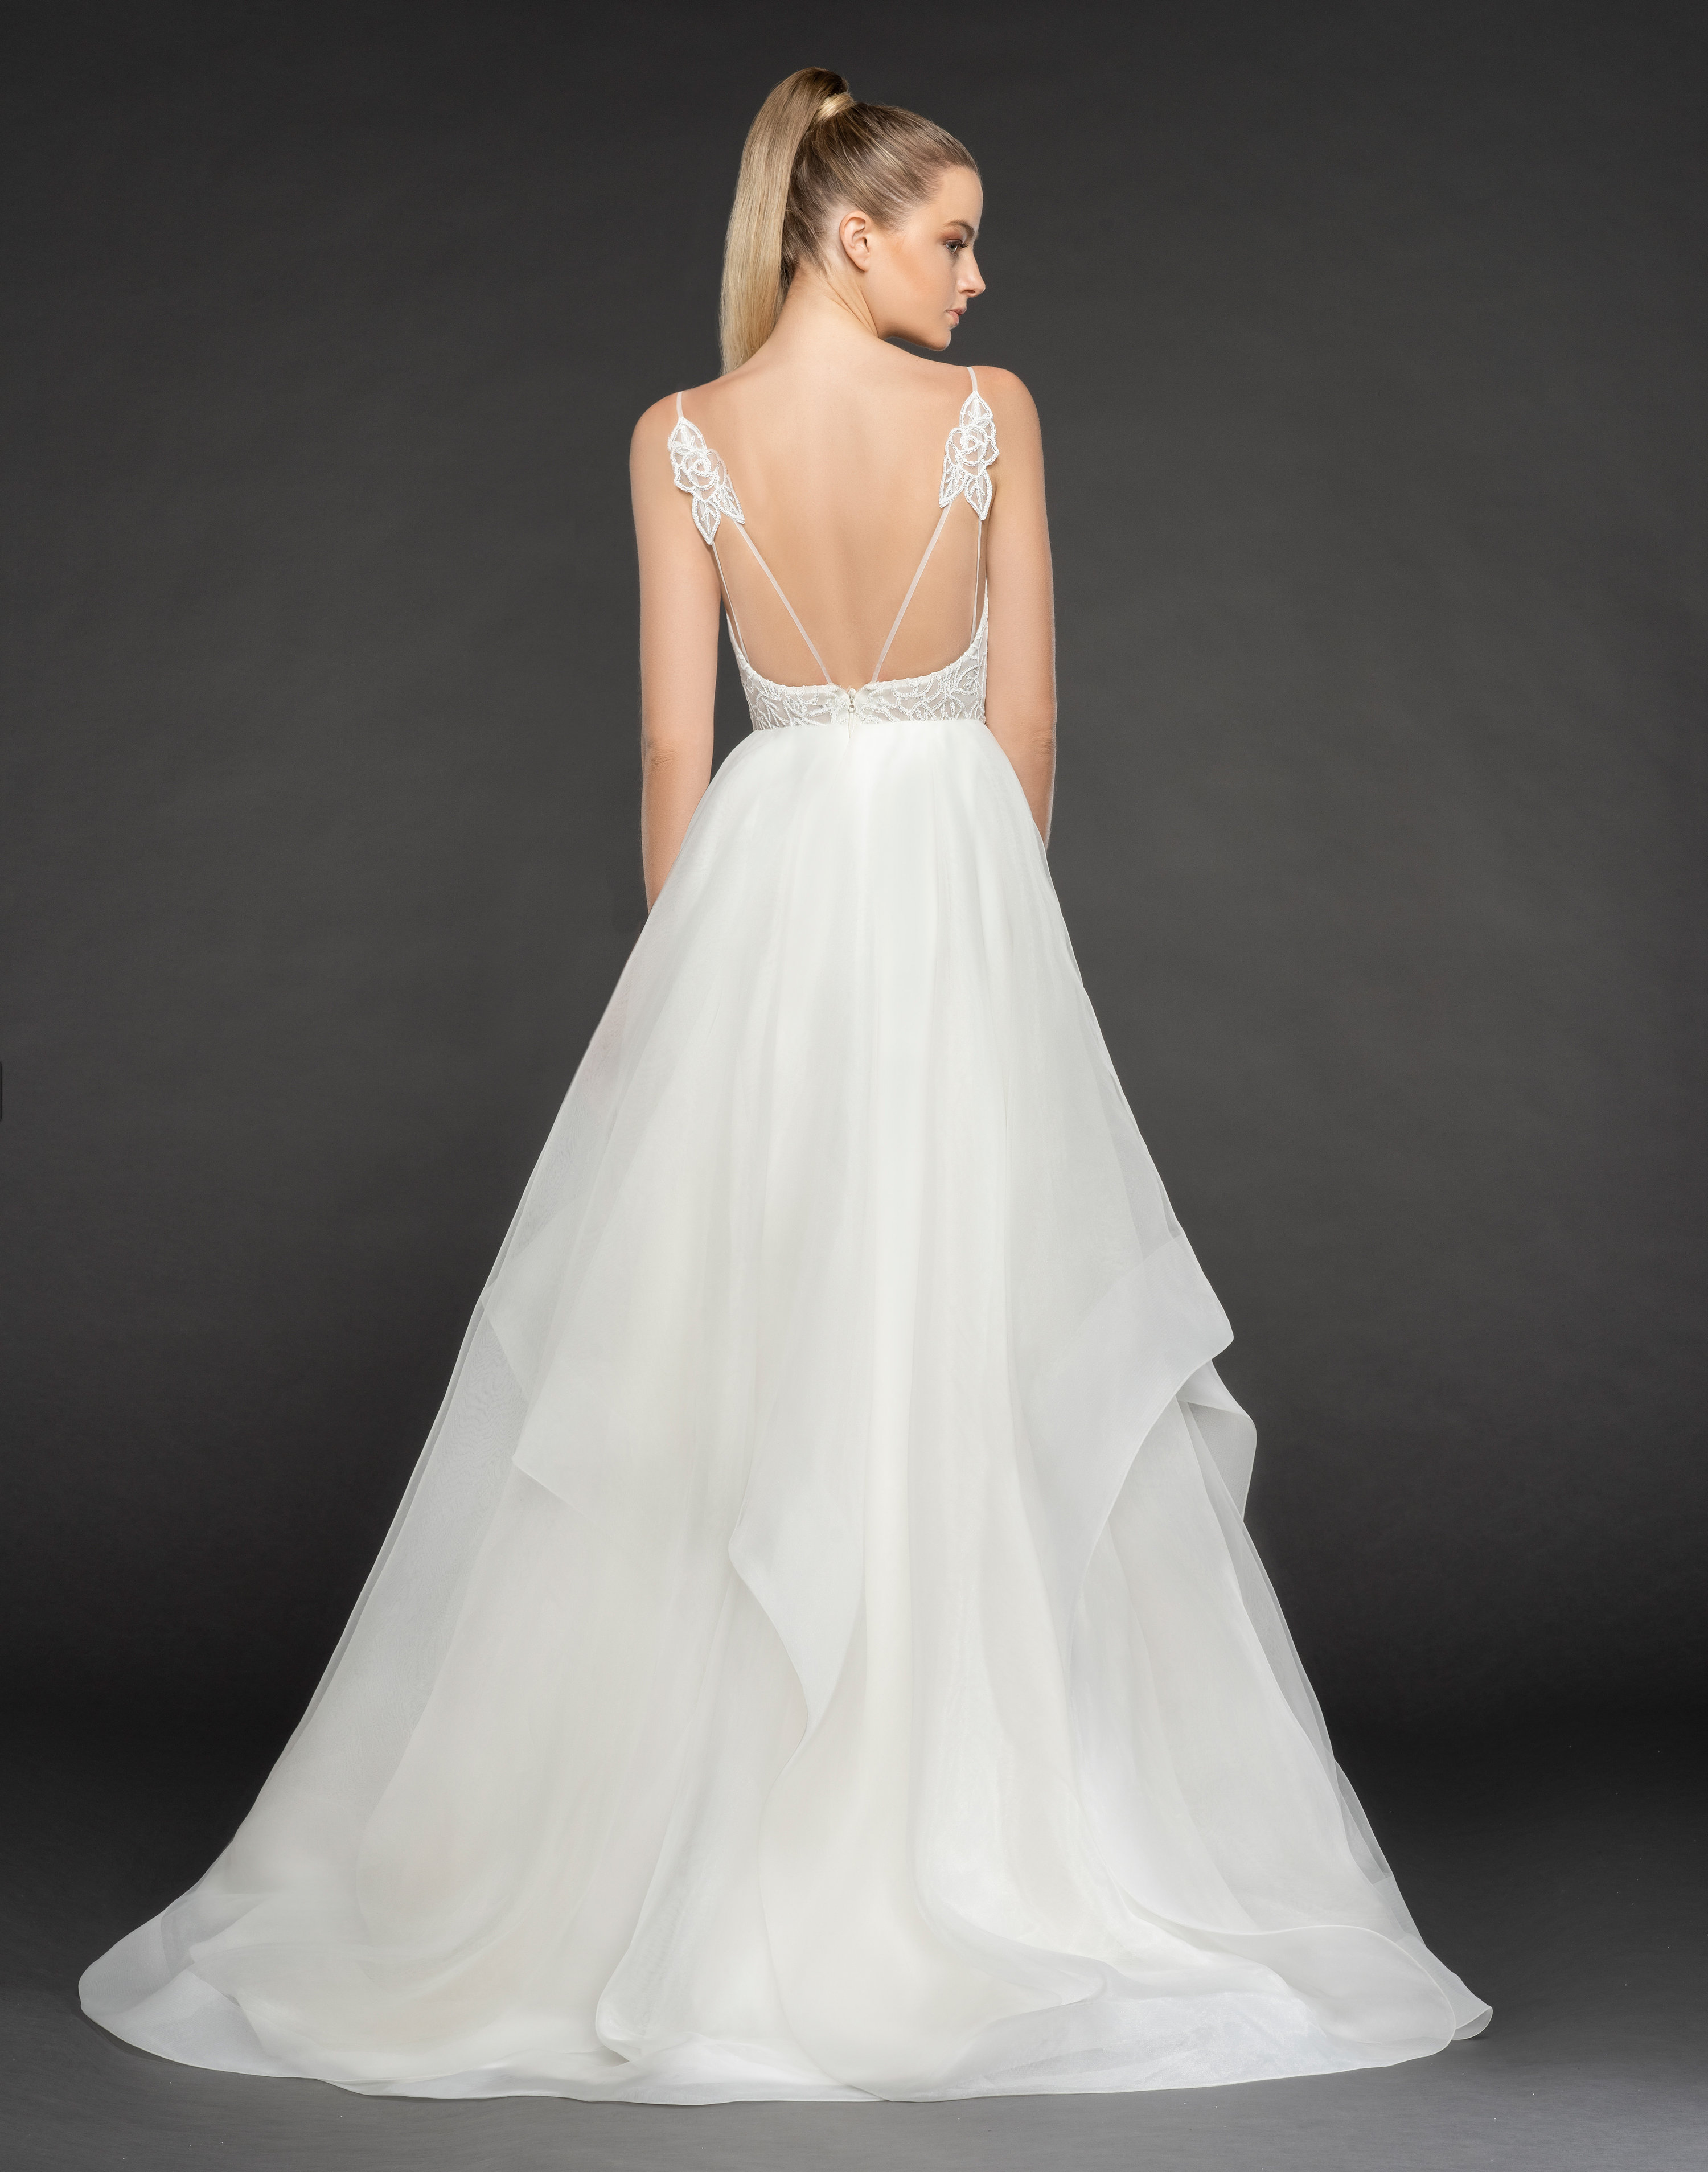 Deep Sweetheart Neckline Beaded Floral Detailed Bodice Ball Gown ...